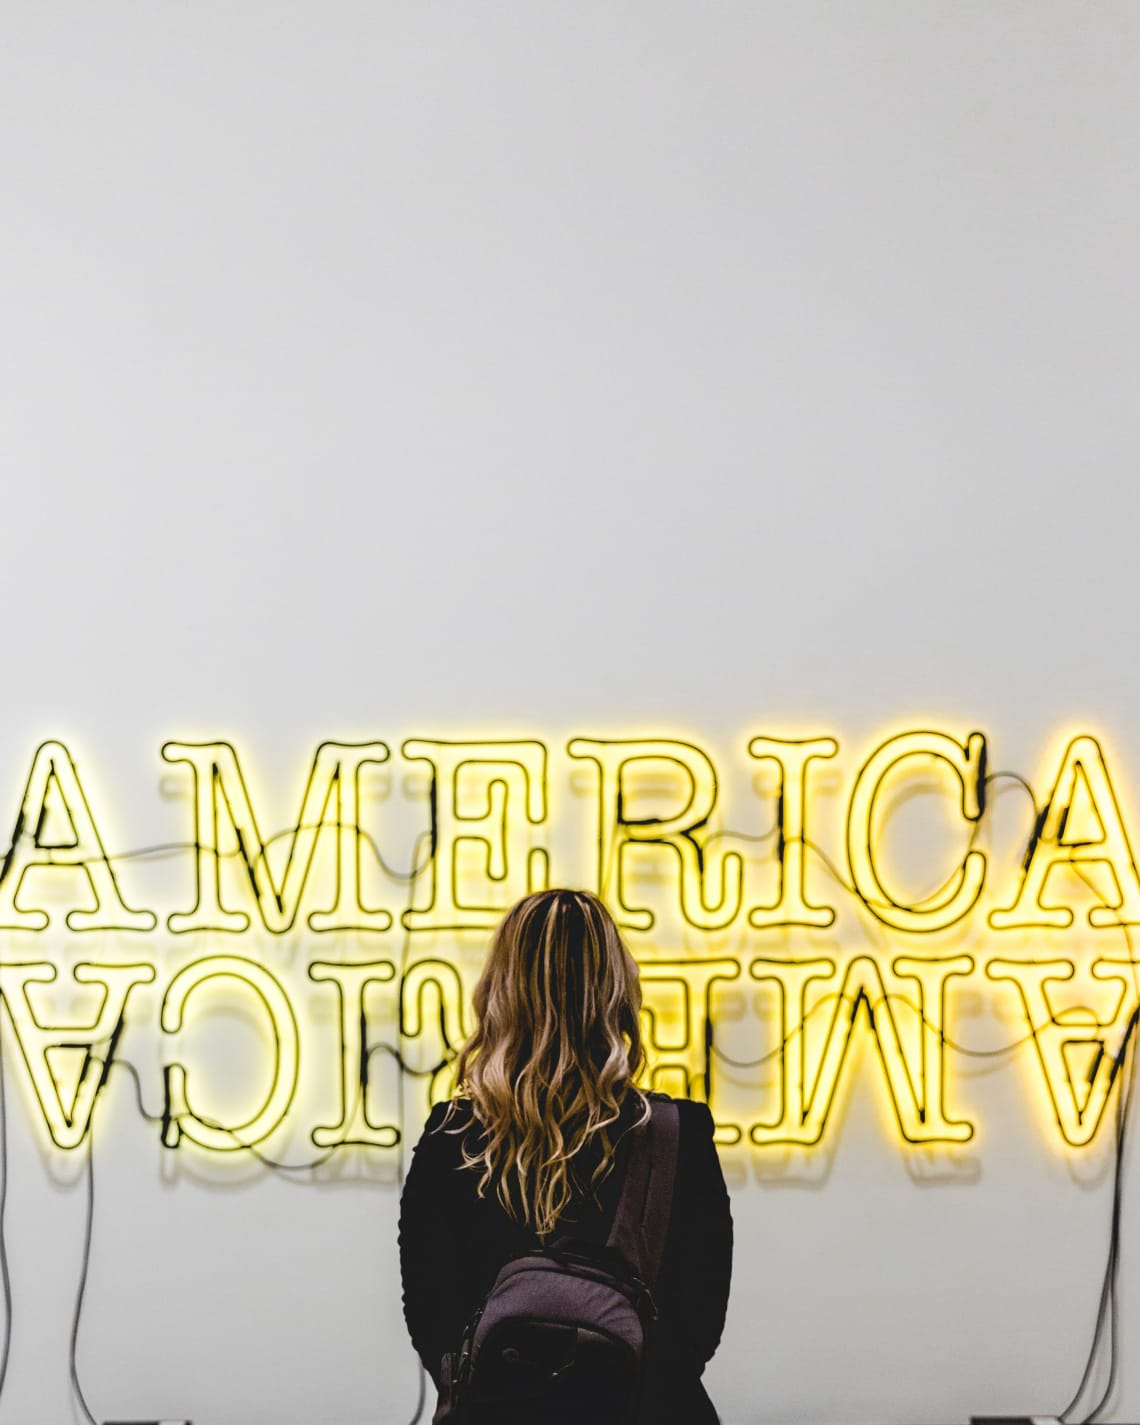 America sign, The Broad, Los Angeles, United States